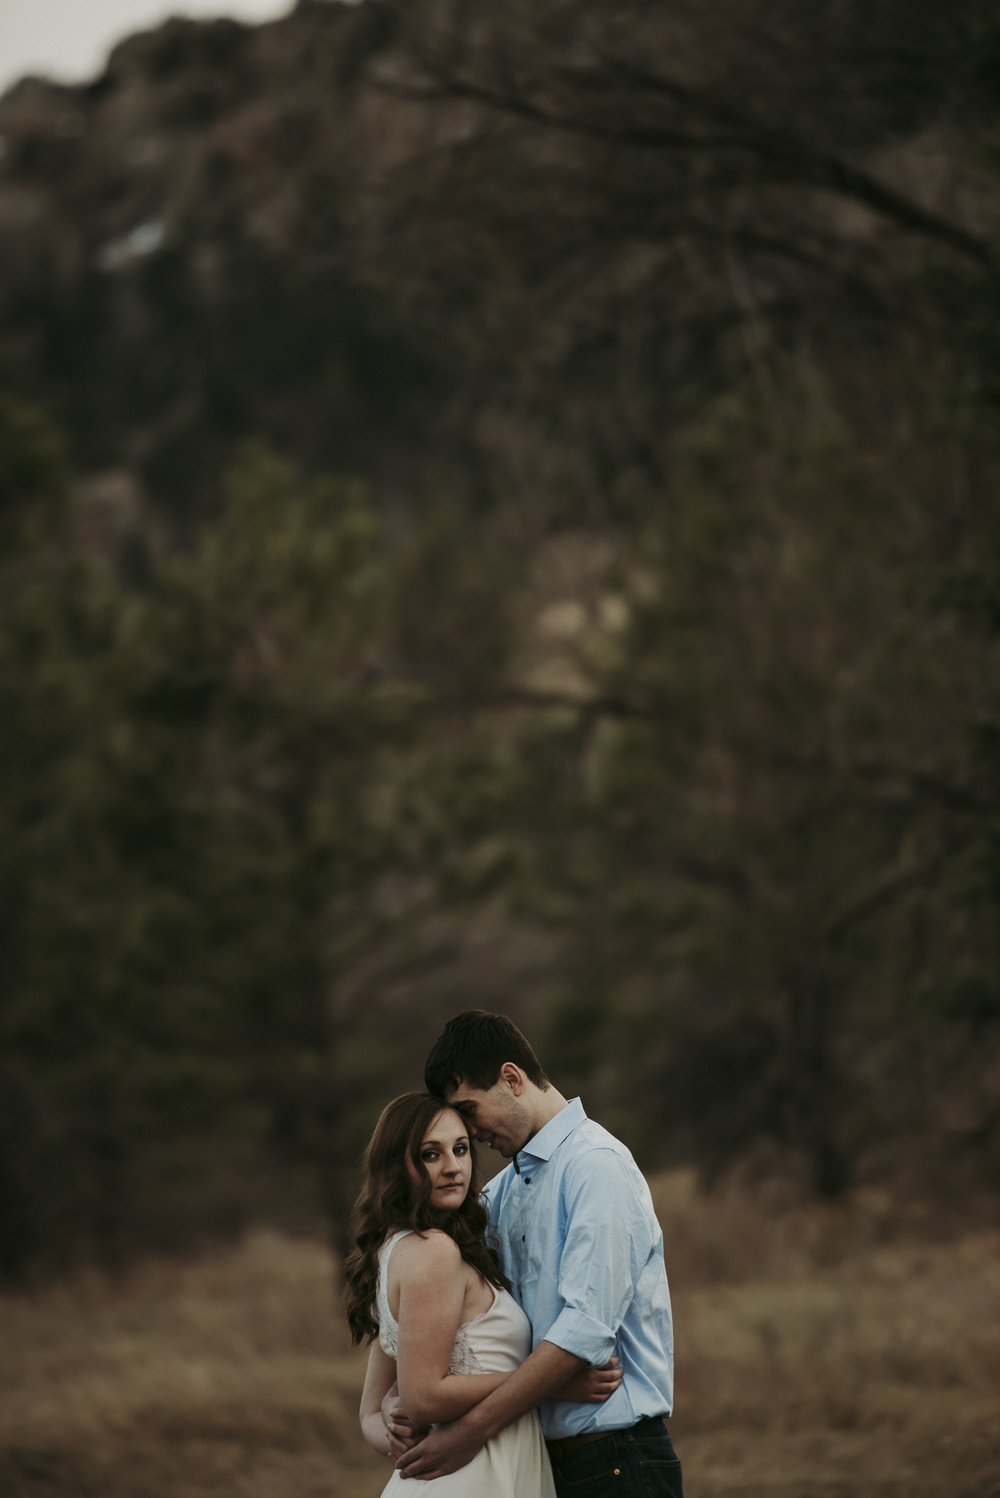 180416CHAI RYAN - COLORADO PHOTOGRAPHER - DEBI RAE PHOTOGRAPHY-9174.jpg